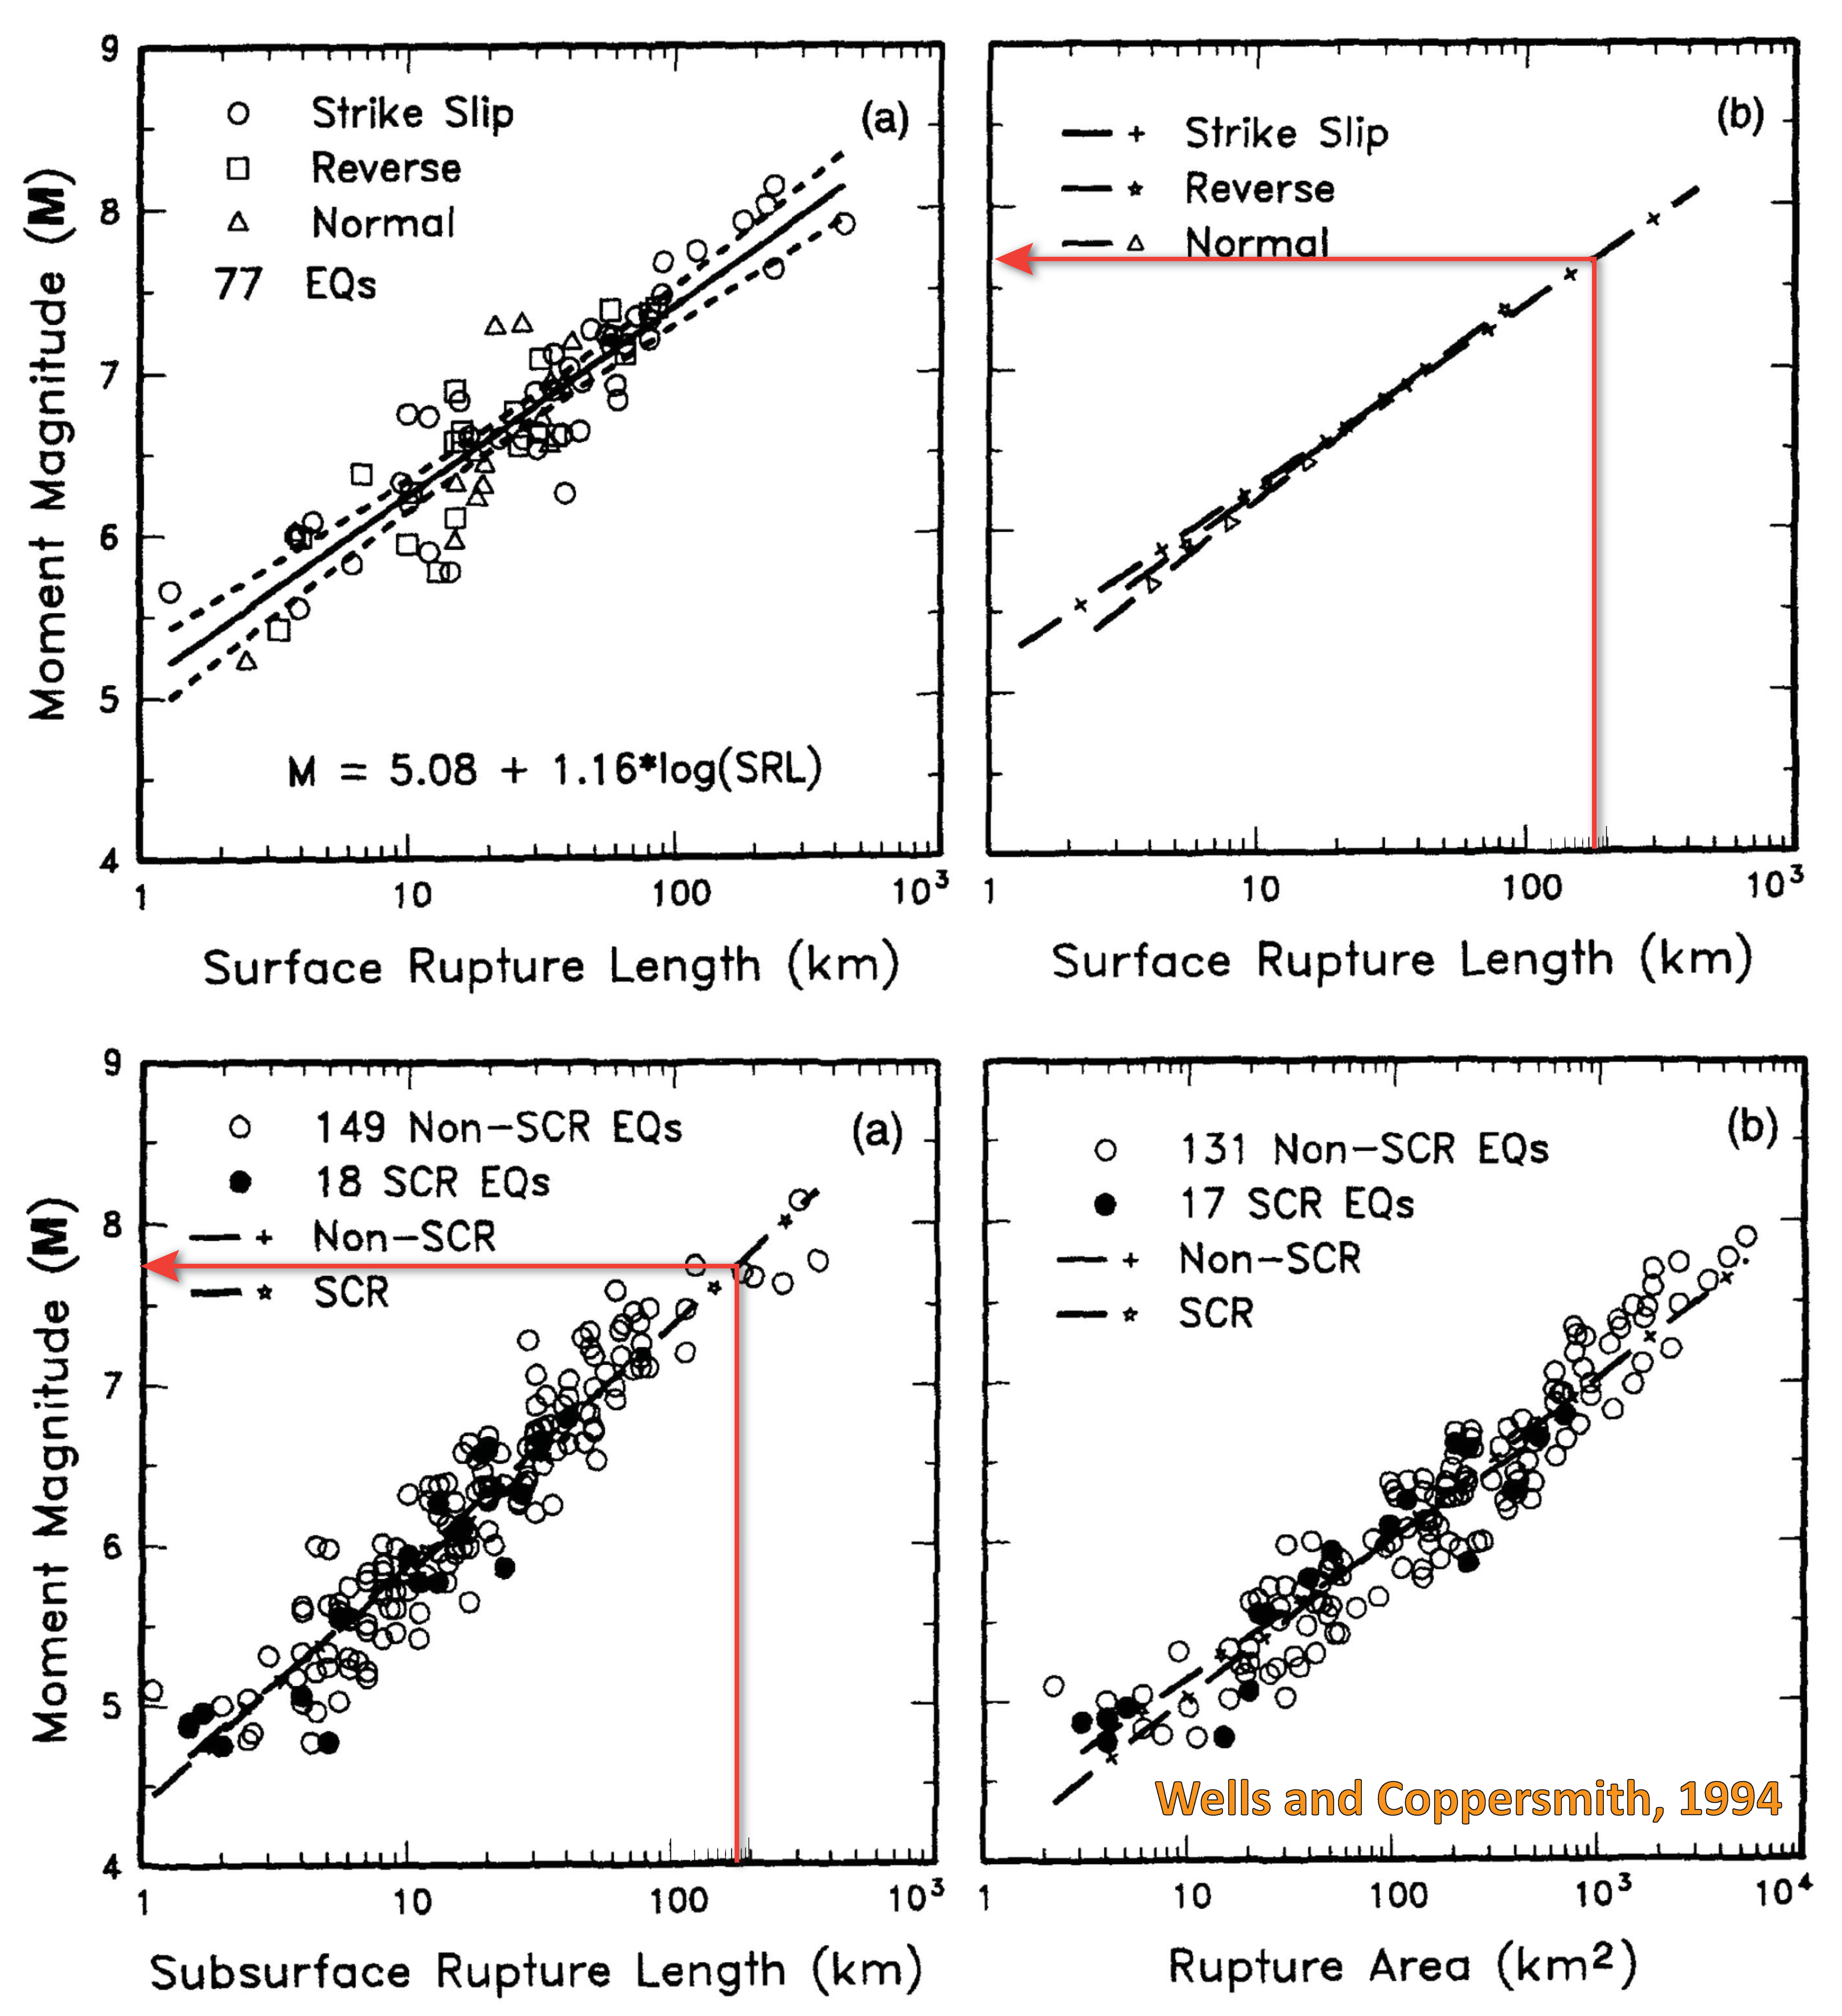 Jay Patton Online The Center Body And Range Of Technically Simple Free Diagram Galleryhipcom Hippest Galleries Figure 9 A Regression Surface Rupture Length On Magnitude M Line Shown For All Slip Type Relationship Short Dashed Indicates 95